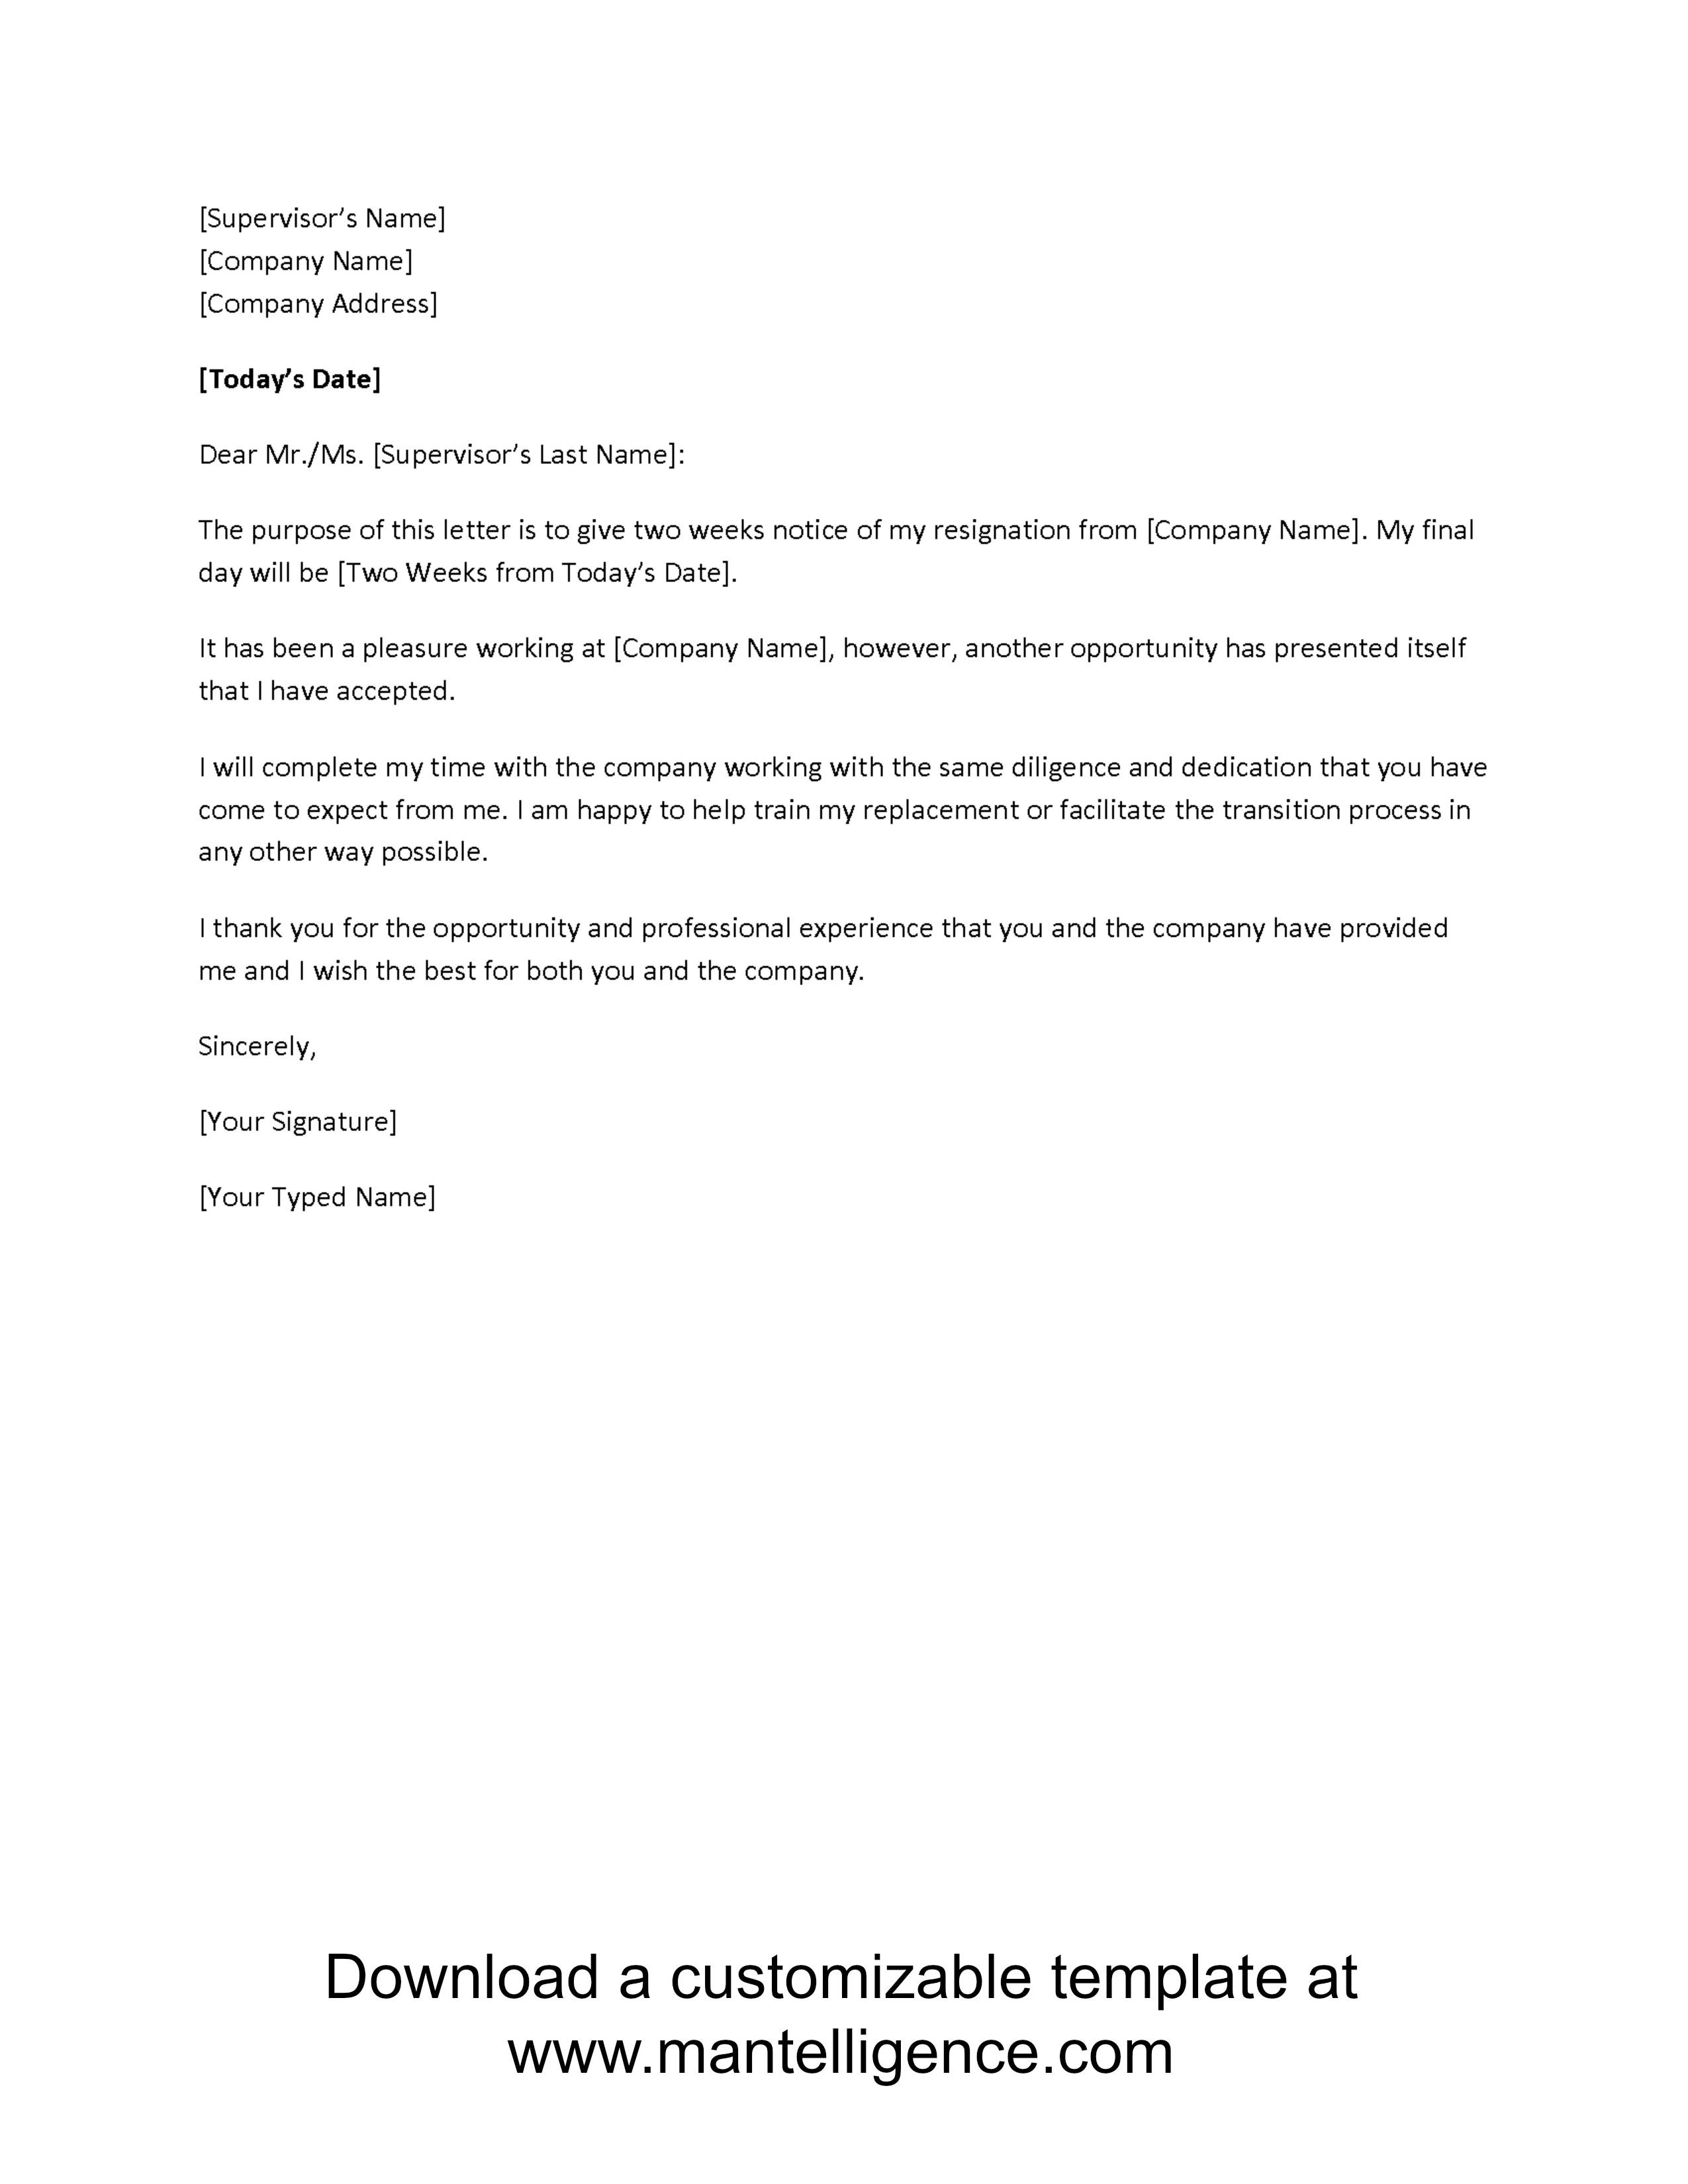 Dental Patient Dismissal Letter Template - 3 Highly Professional Two Weeks Notice Letter Templates